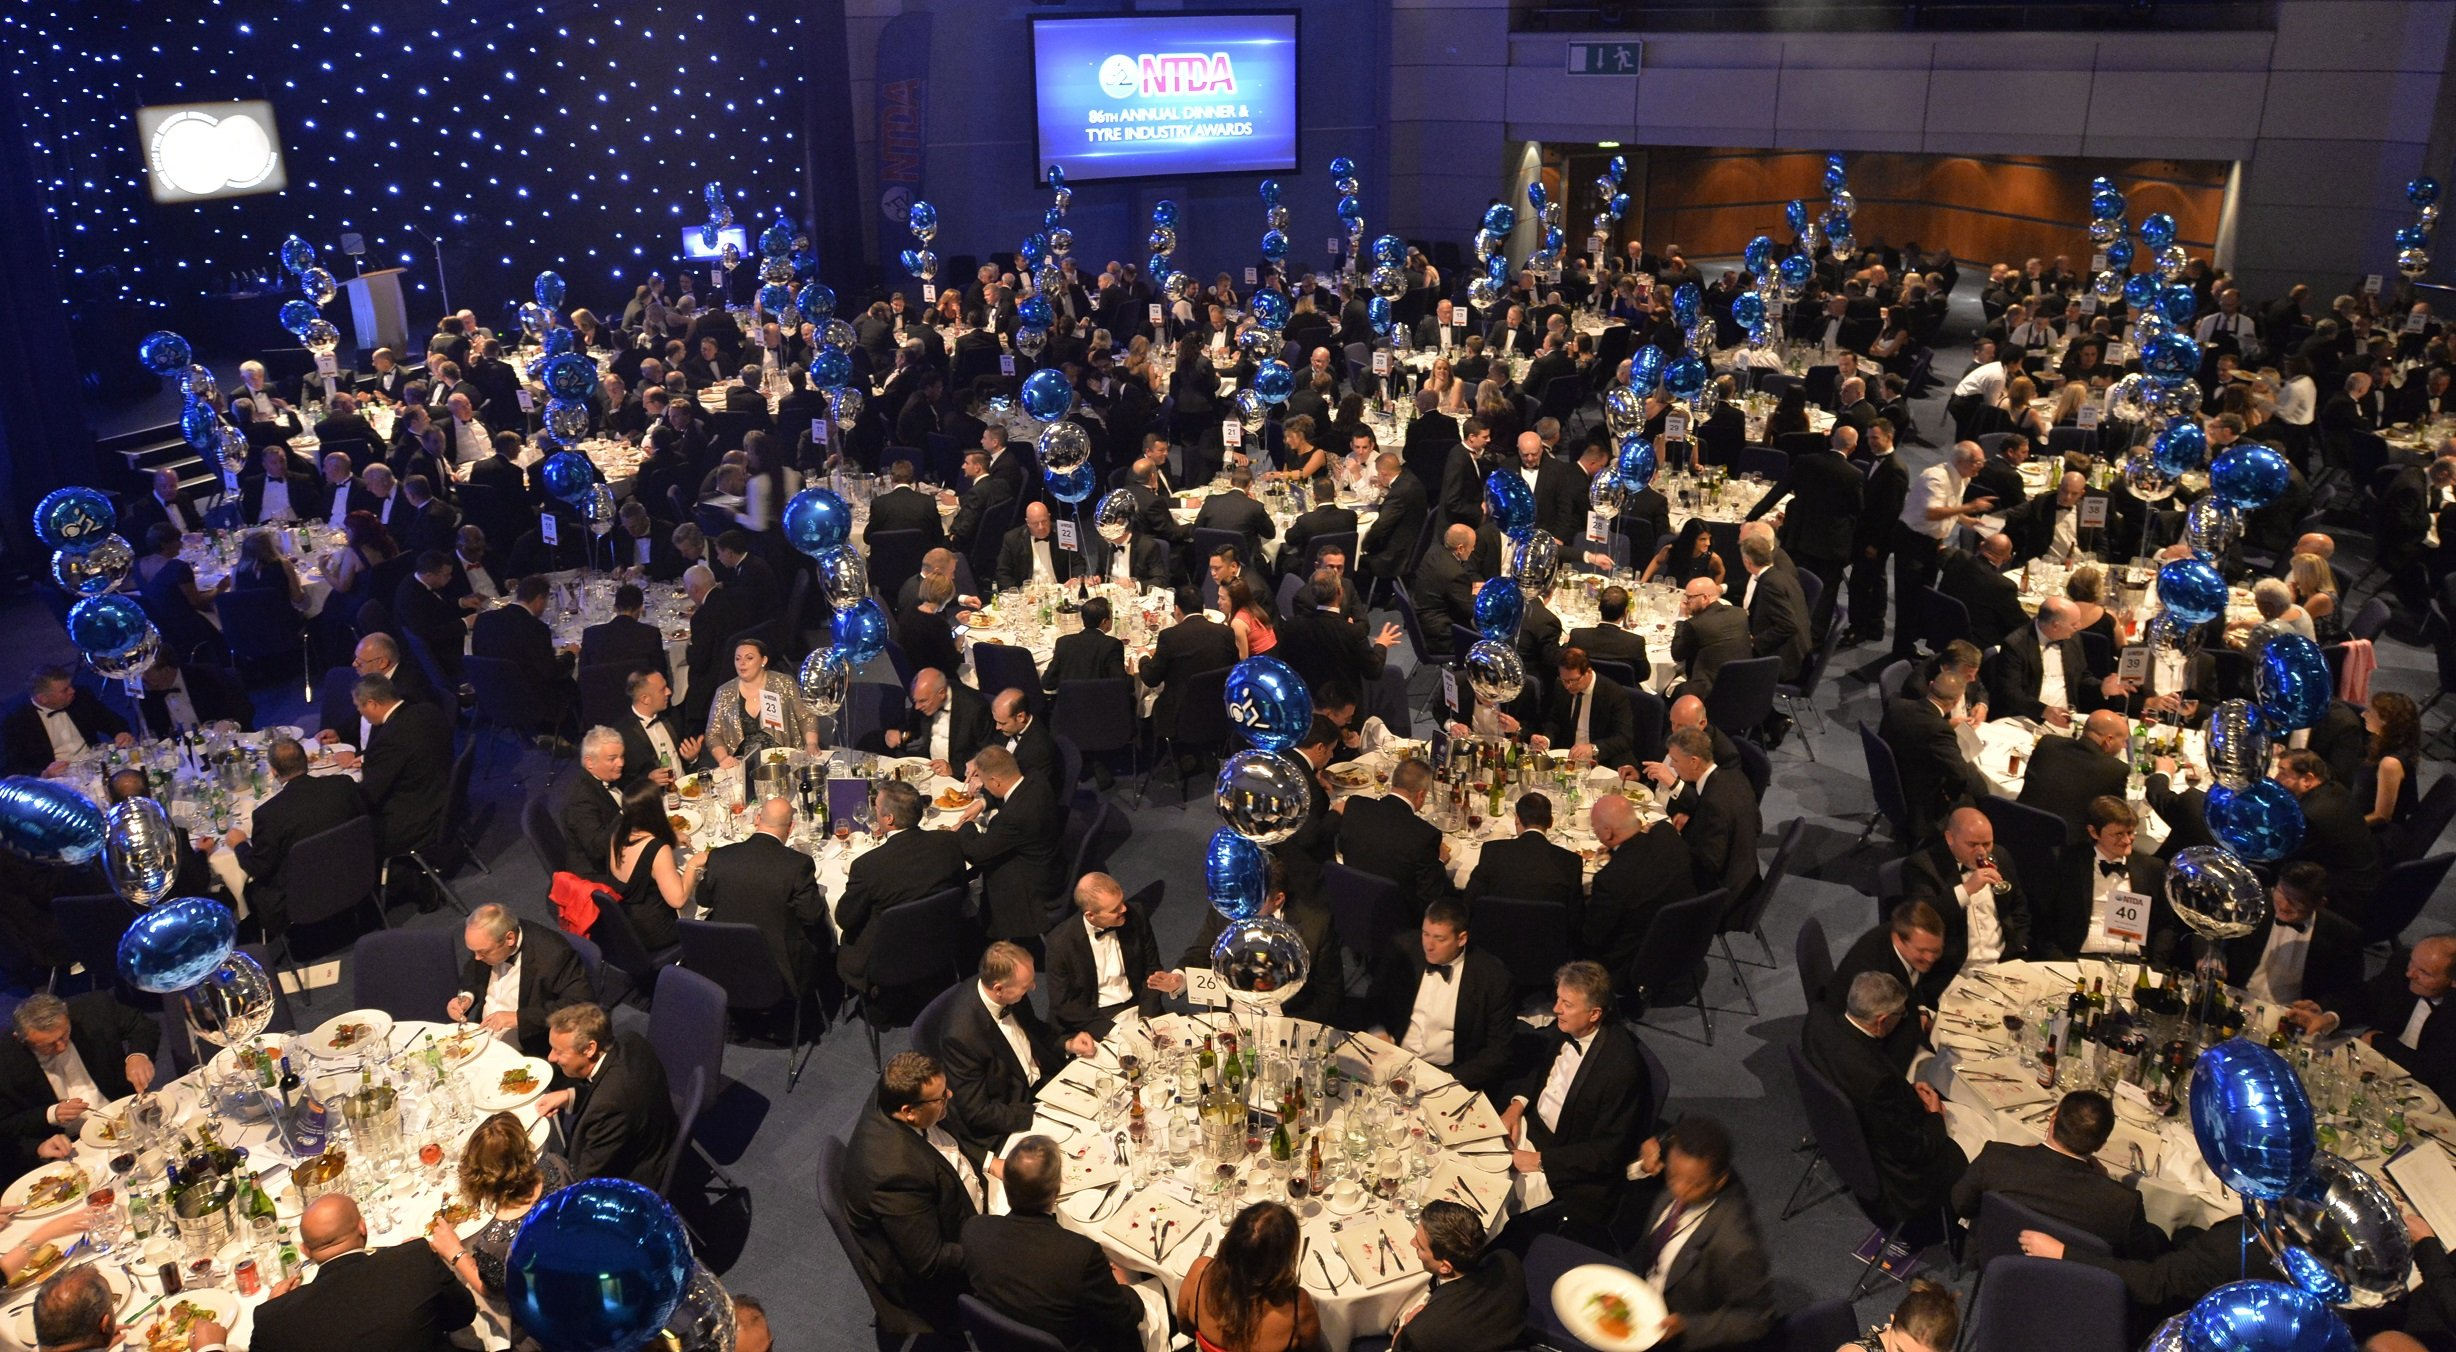 CONTINENTAL SPONSORS THE 2017 NTDA ANNUAL DINNER